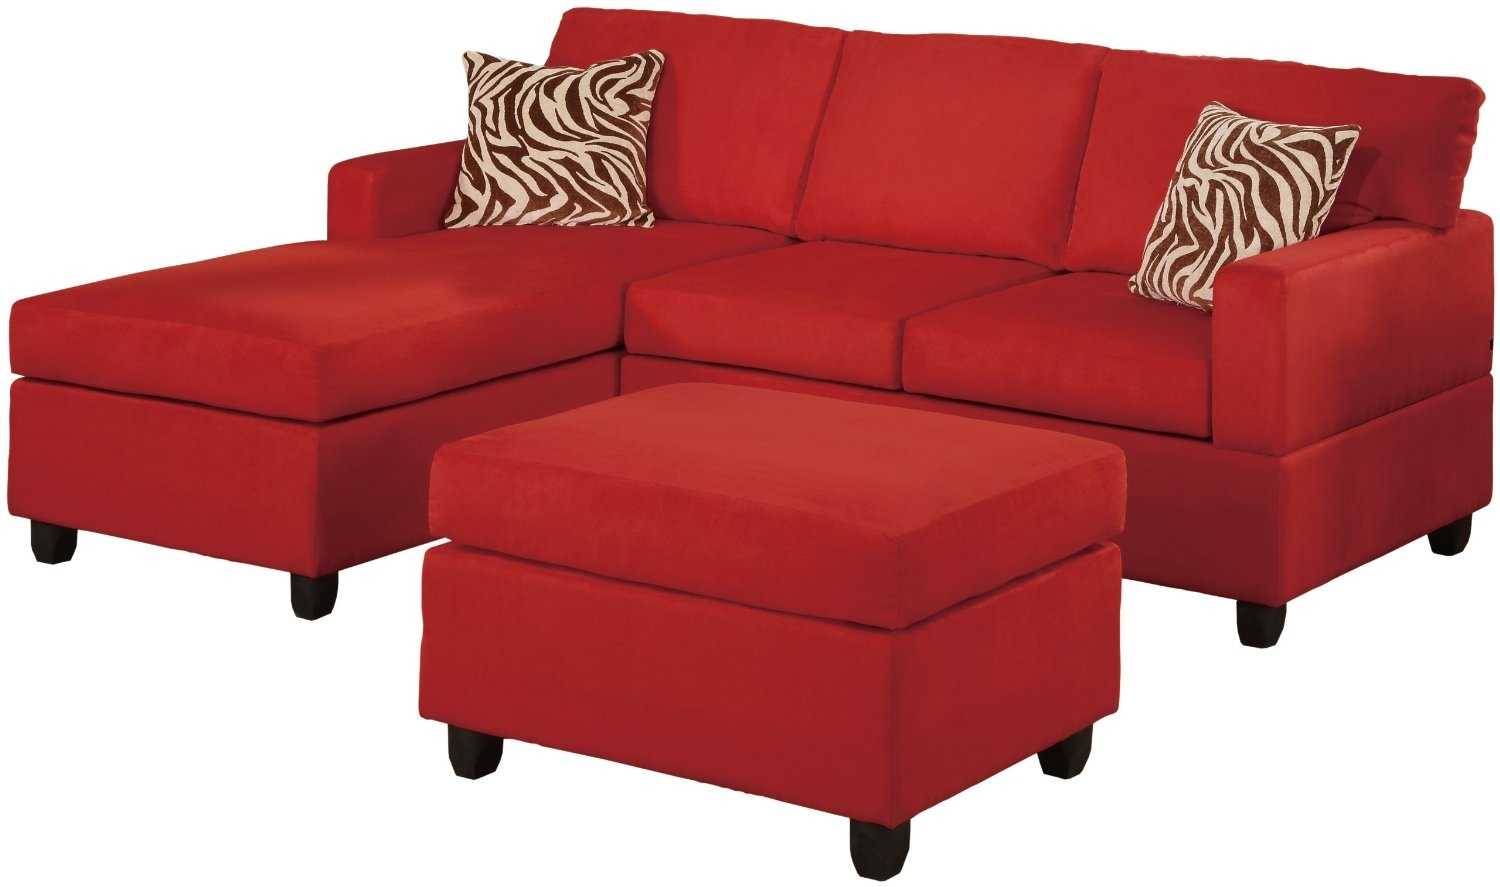 Cheap Red Couches Pertaining To Red Sofas And Chairs (Image 4 of 15)